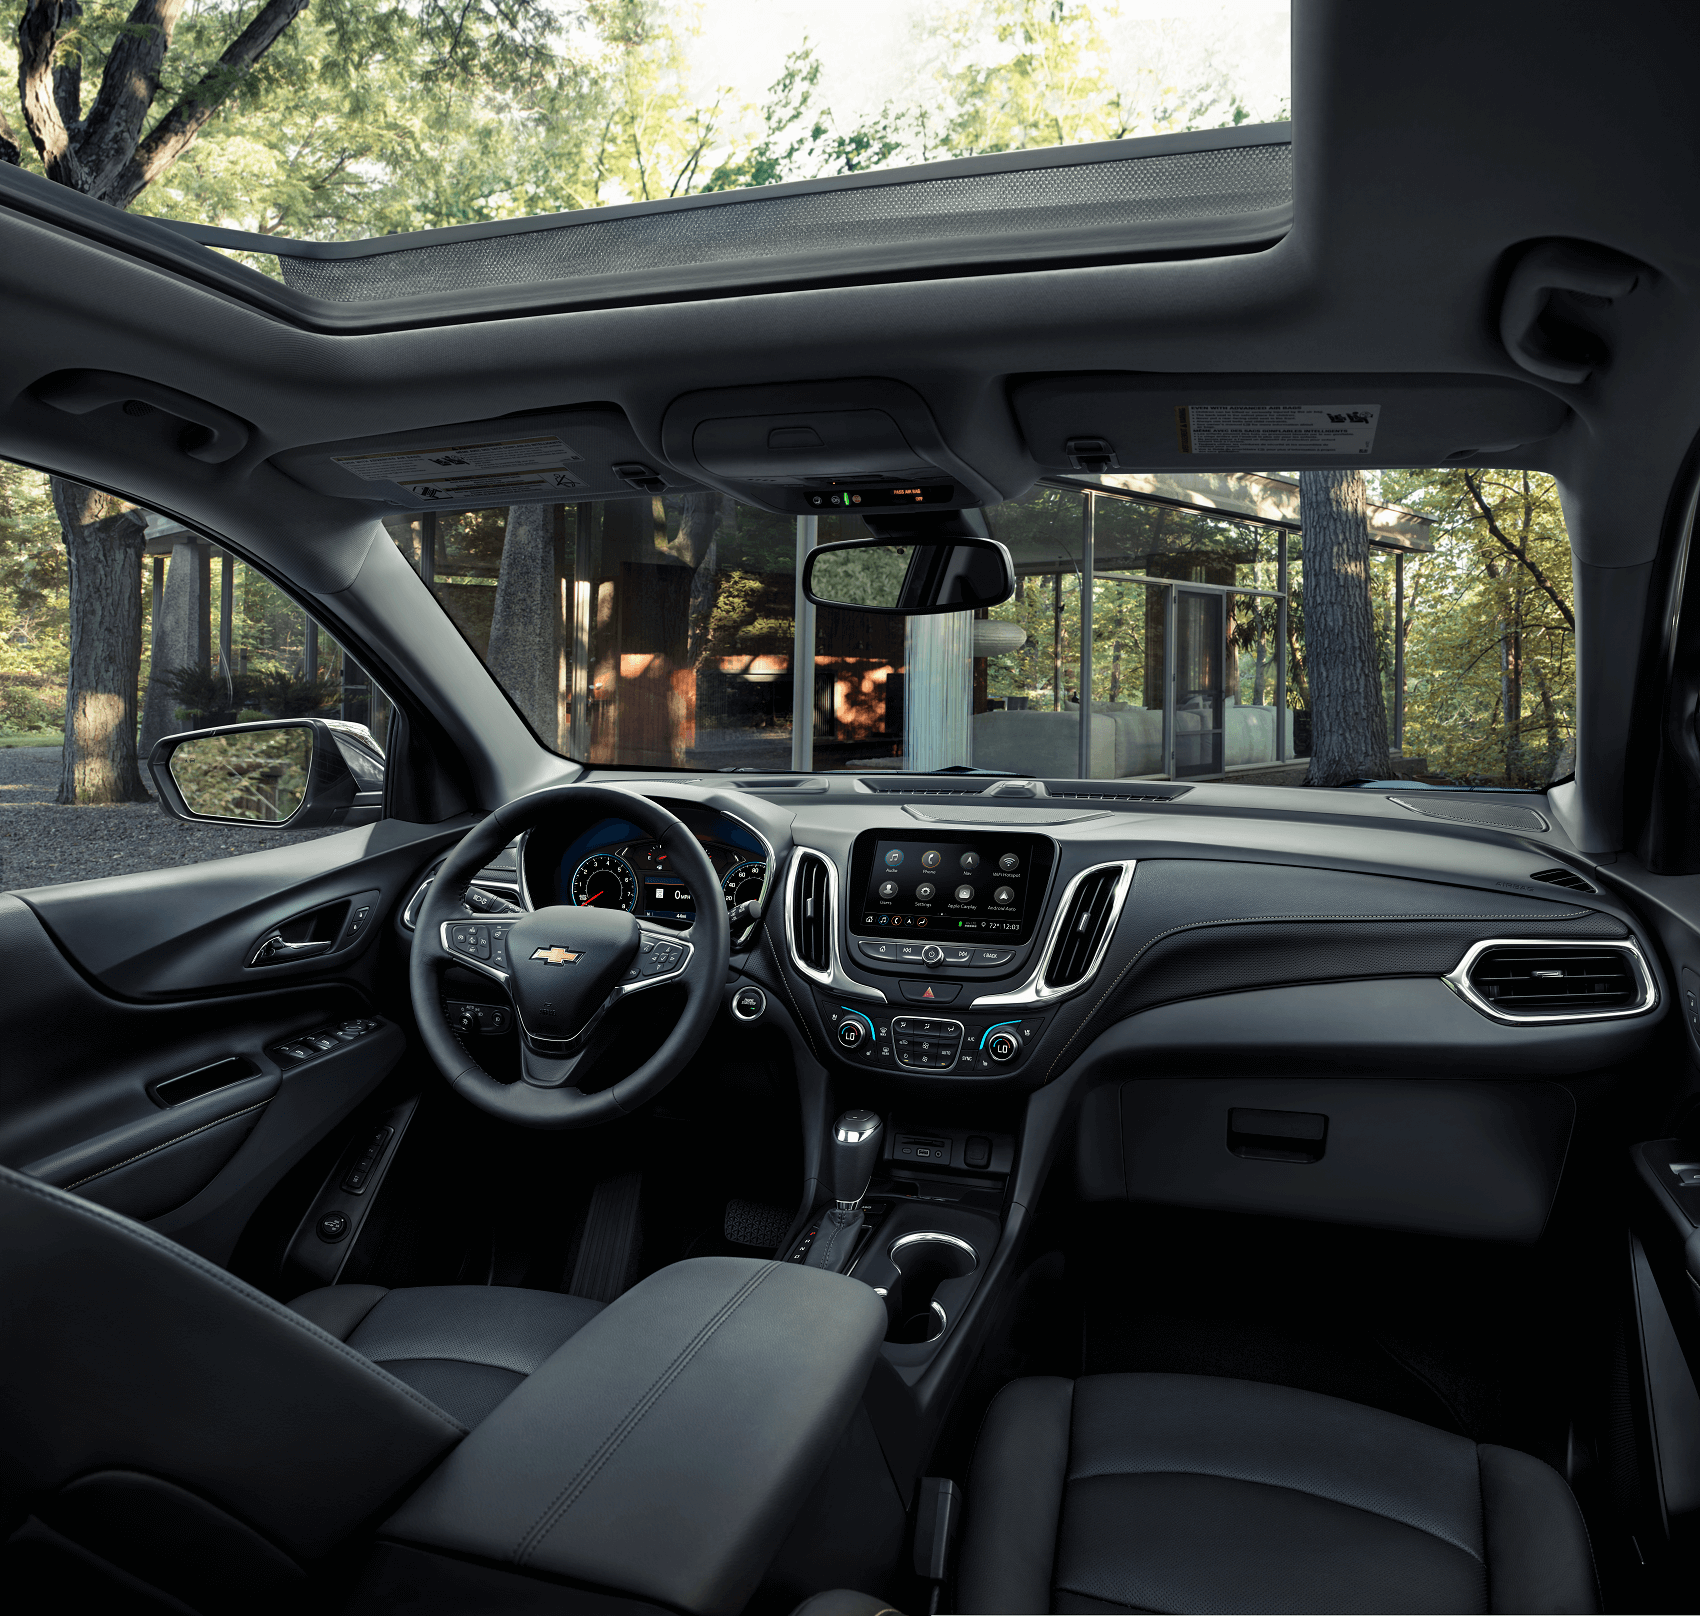 Chevy Equinox Technology Features